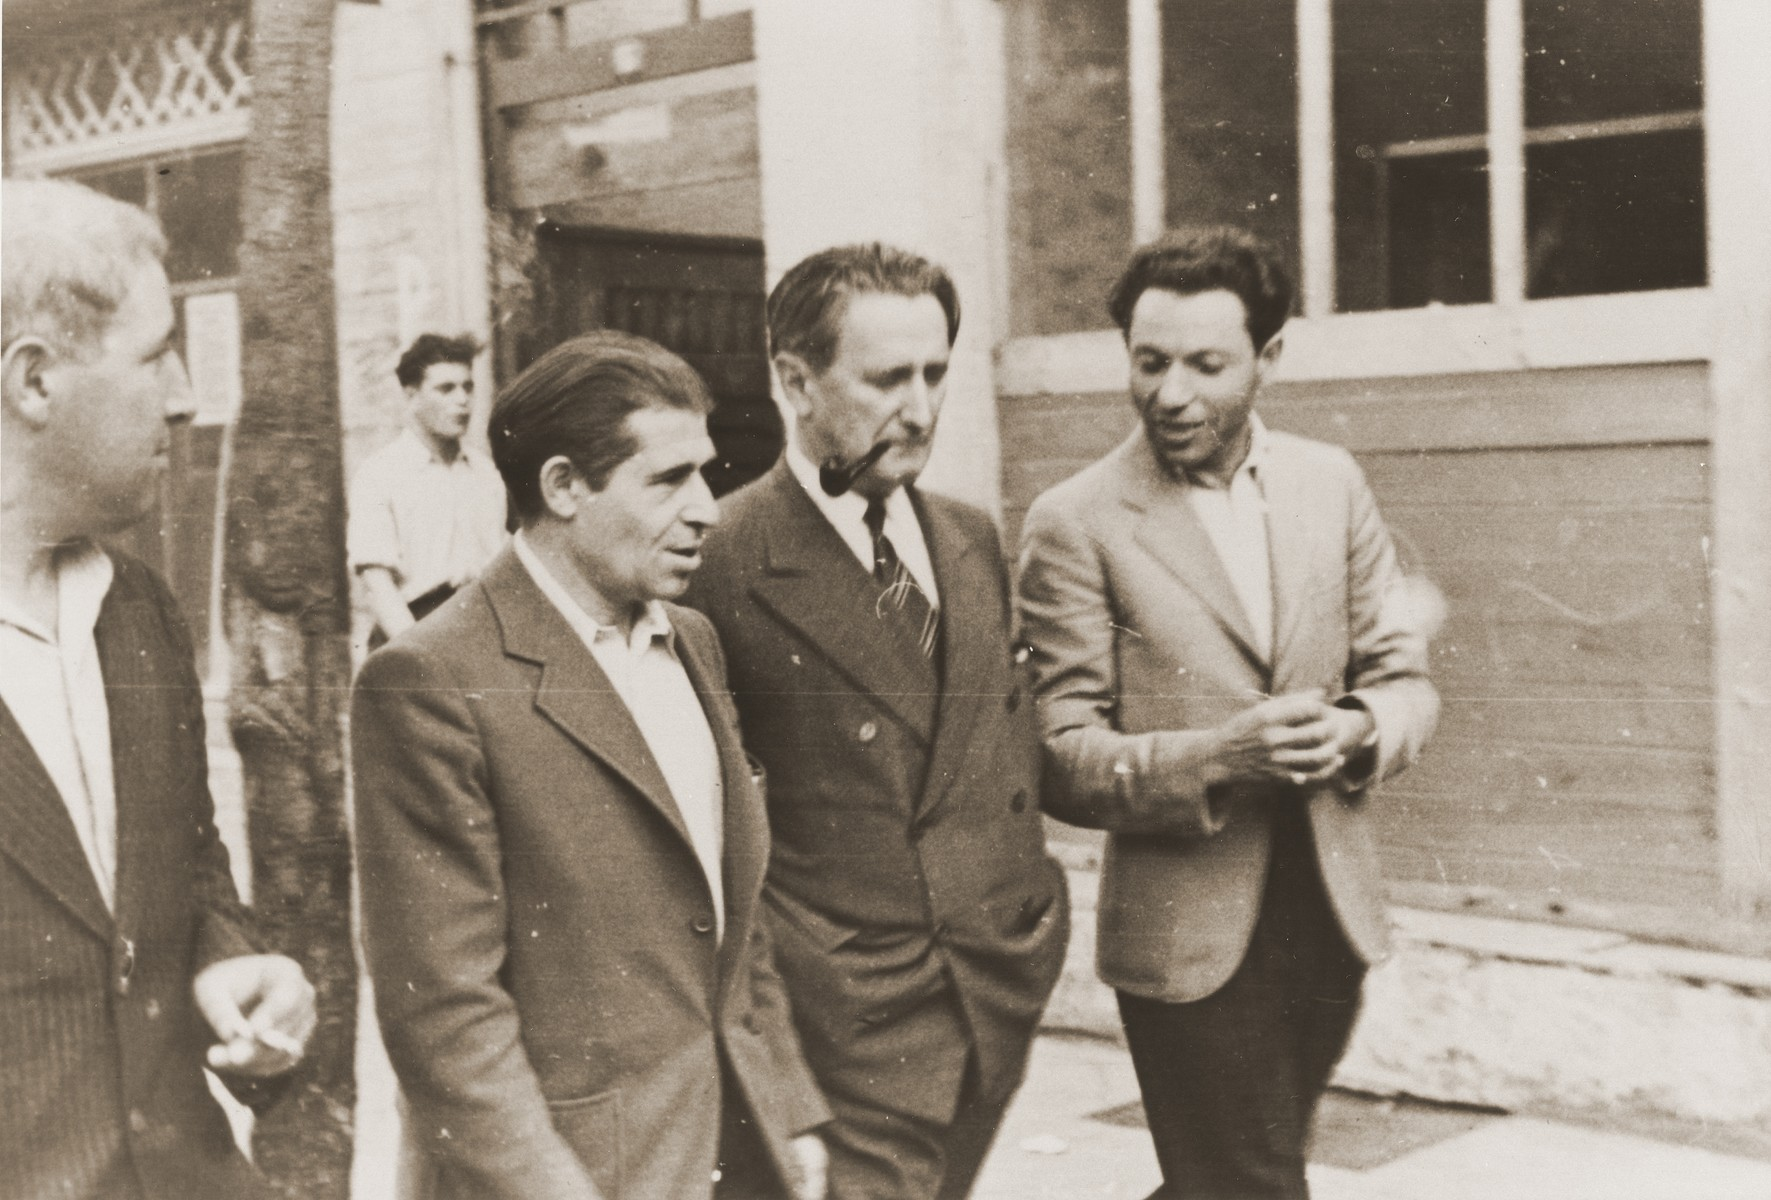 Nahum Goldmann, chairman of the executive council of the World Jewish Congress, is led on a tour of the Lampertheim displaced persons camp.  Meyer Brumberg is walking next to Goldmann on his left.